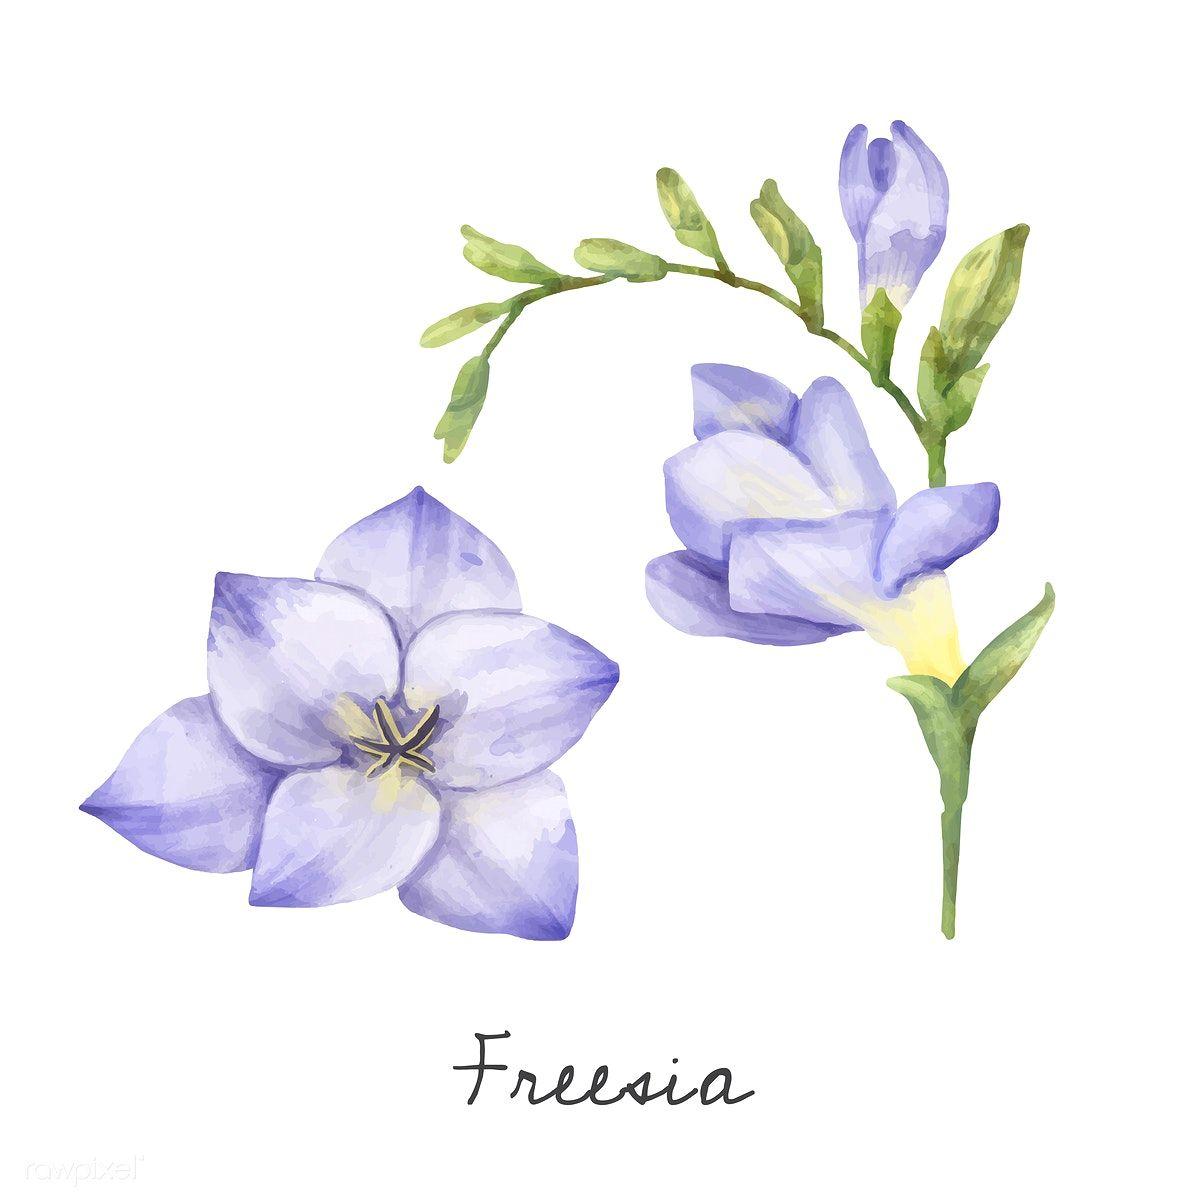 Illustration Of Freesia Flower Isolated On White Background Free Image By Rawpixel Com Flower Illustration Freesia Flowers Flower Drawing